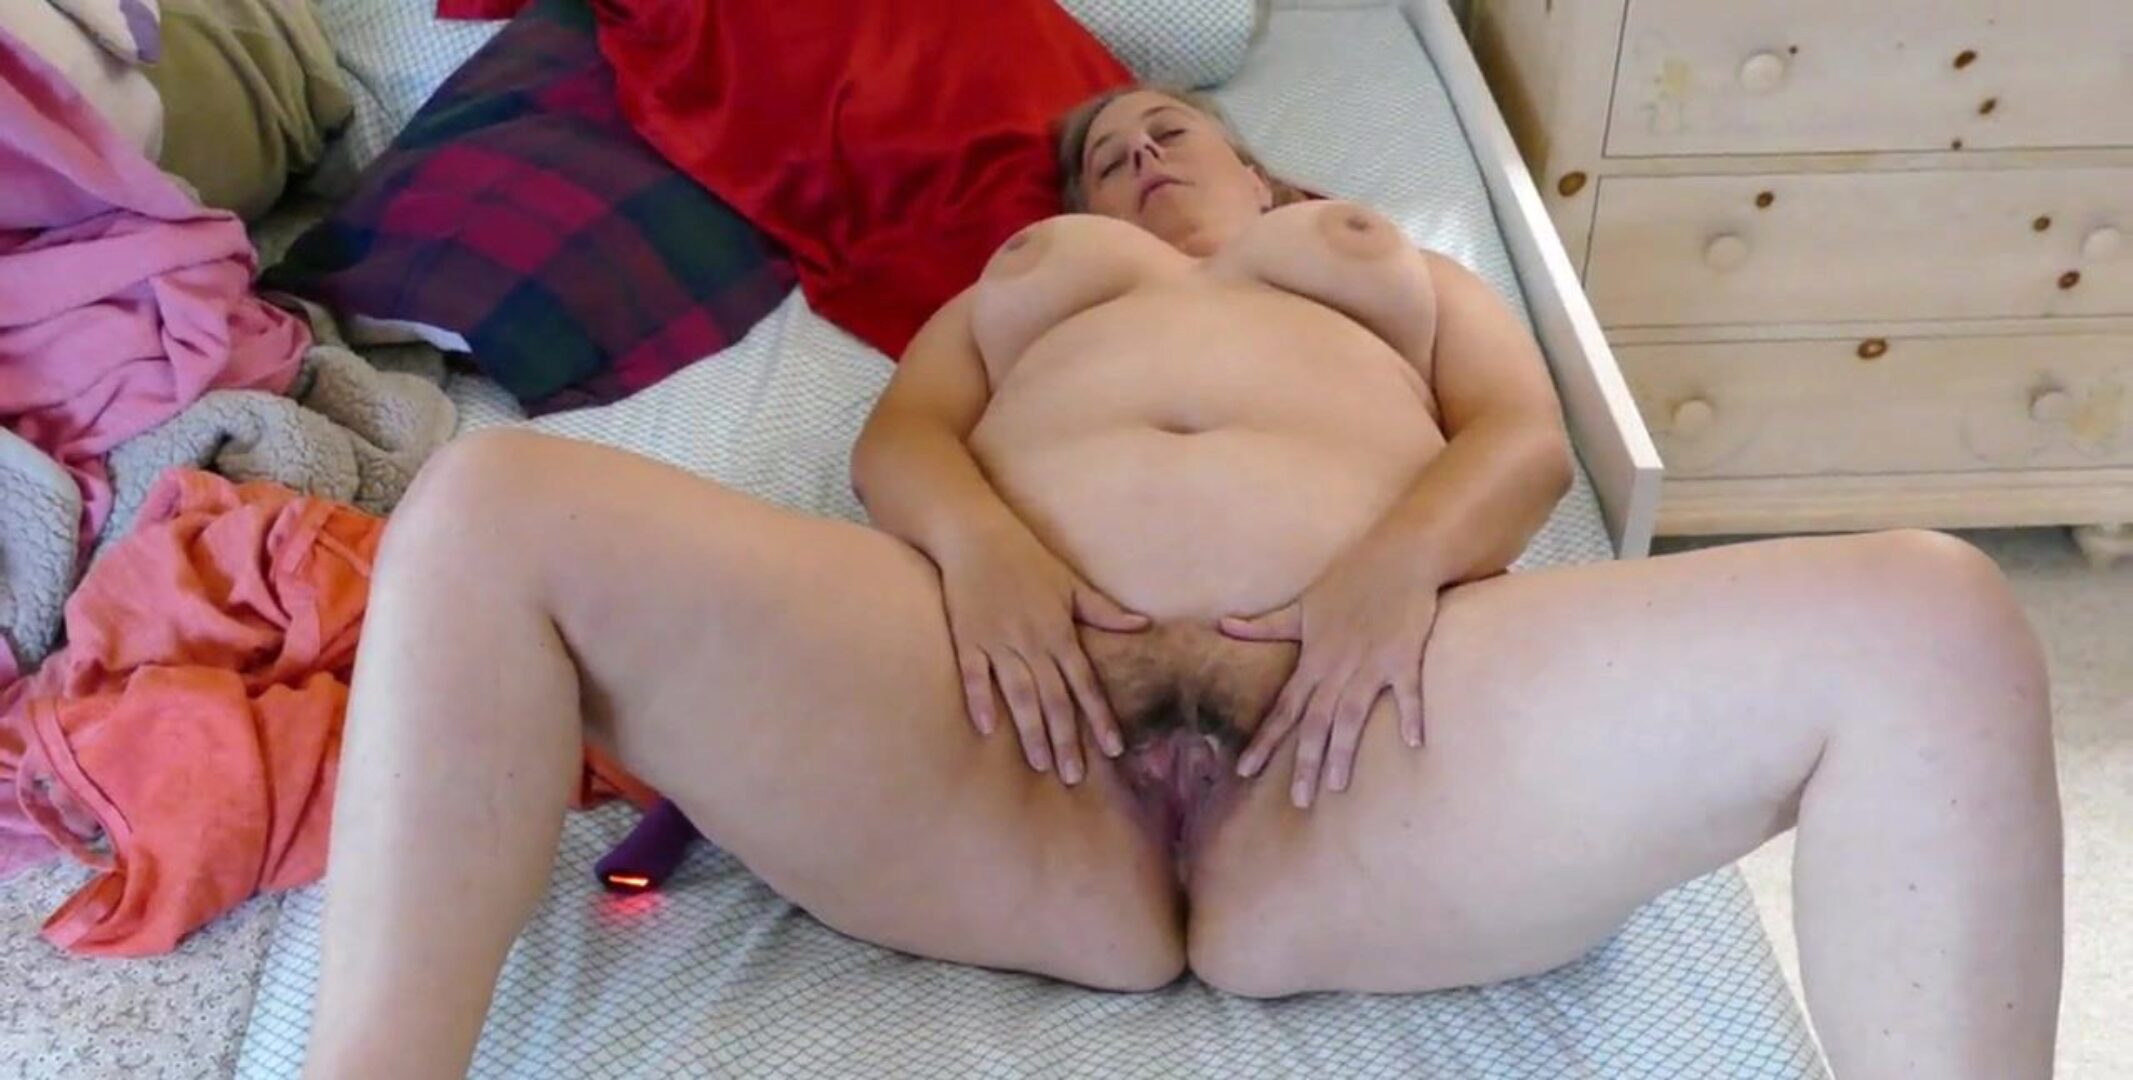 Watching My Chubby BBW Stepmom Masturbate with Her Big Watch Watching My Chubby big beautiful woman Stepmom Masturbate with Her Big Dildo video on xHamster - the ultimate database of free MILF & Mom HD pornography tube episodes